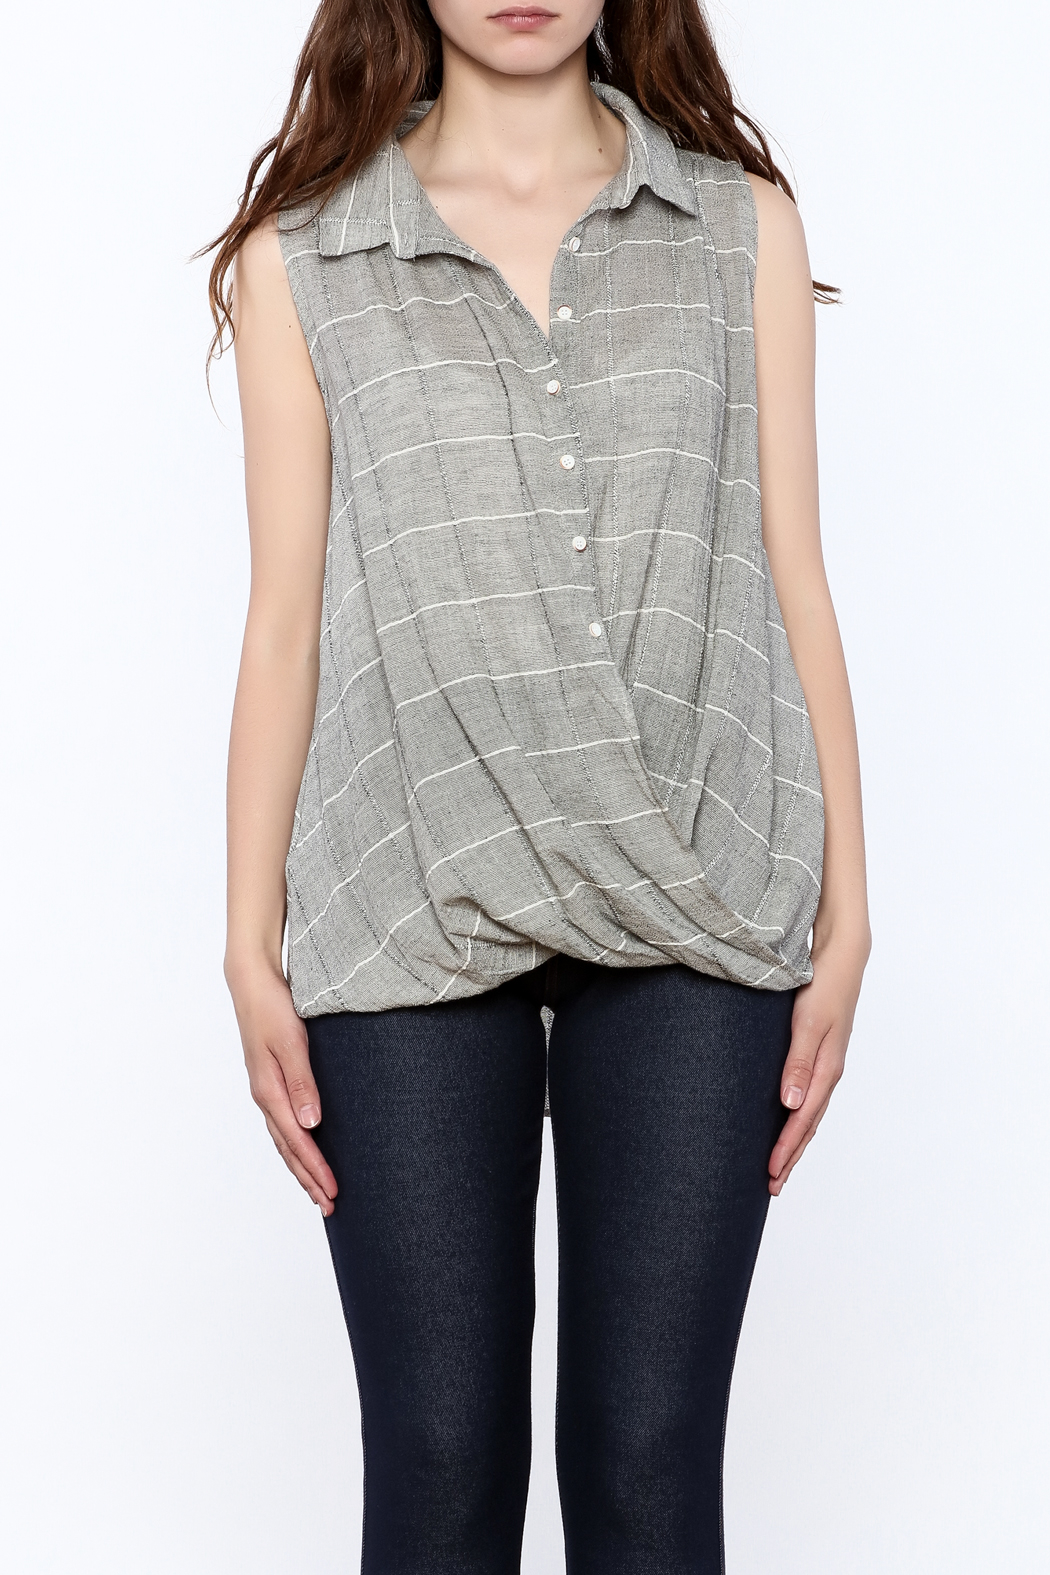 Jella Couture Grey Sleeveless Billowy Top - Side Cropped Image